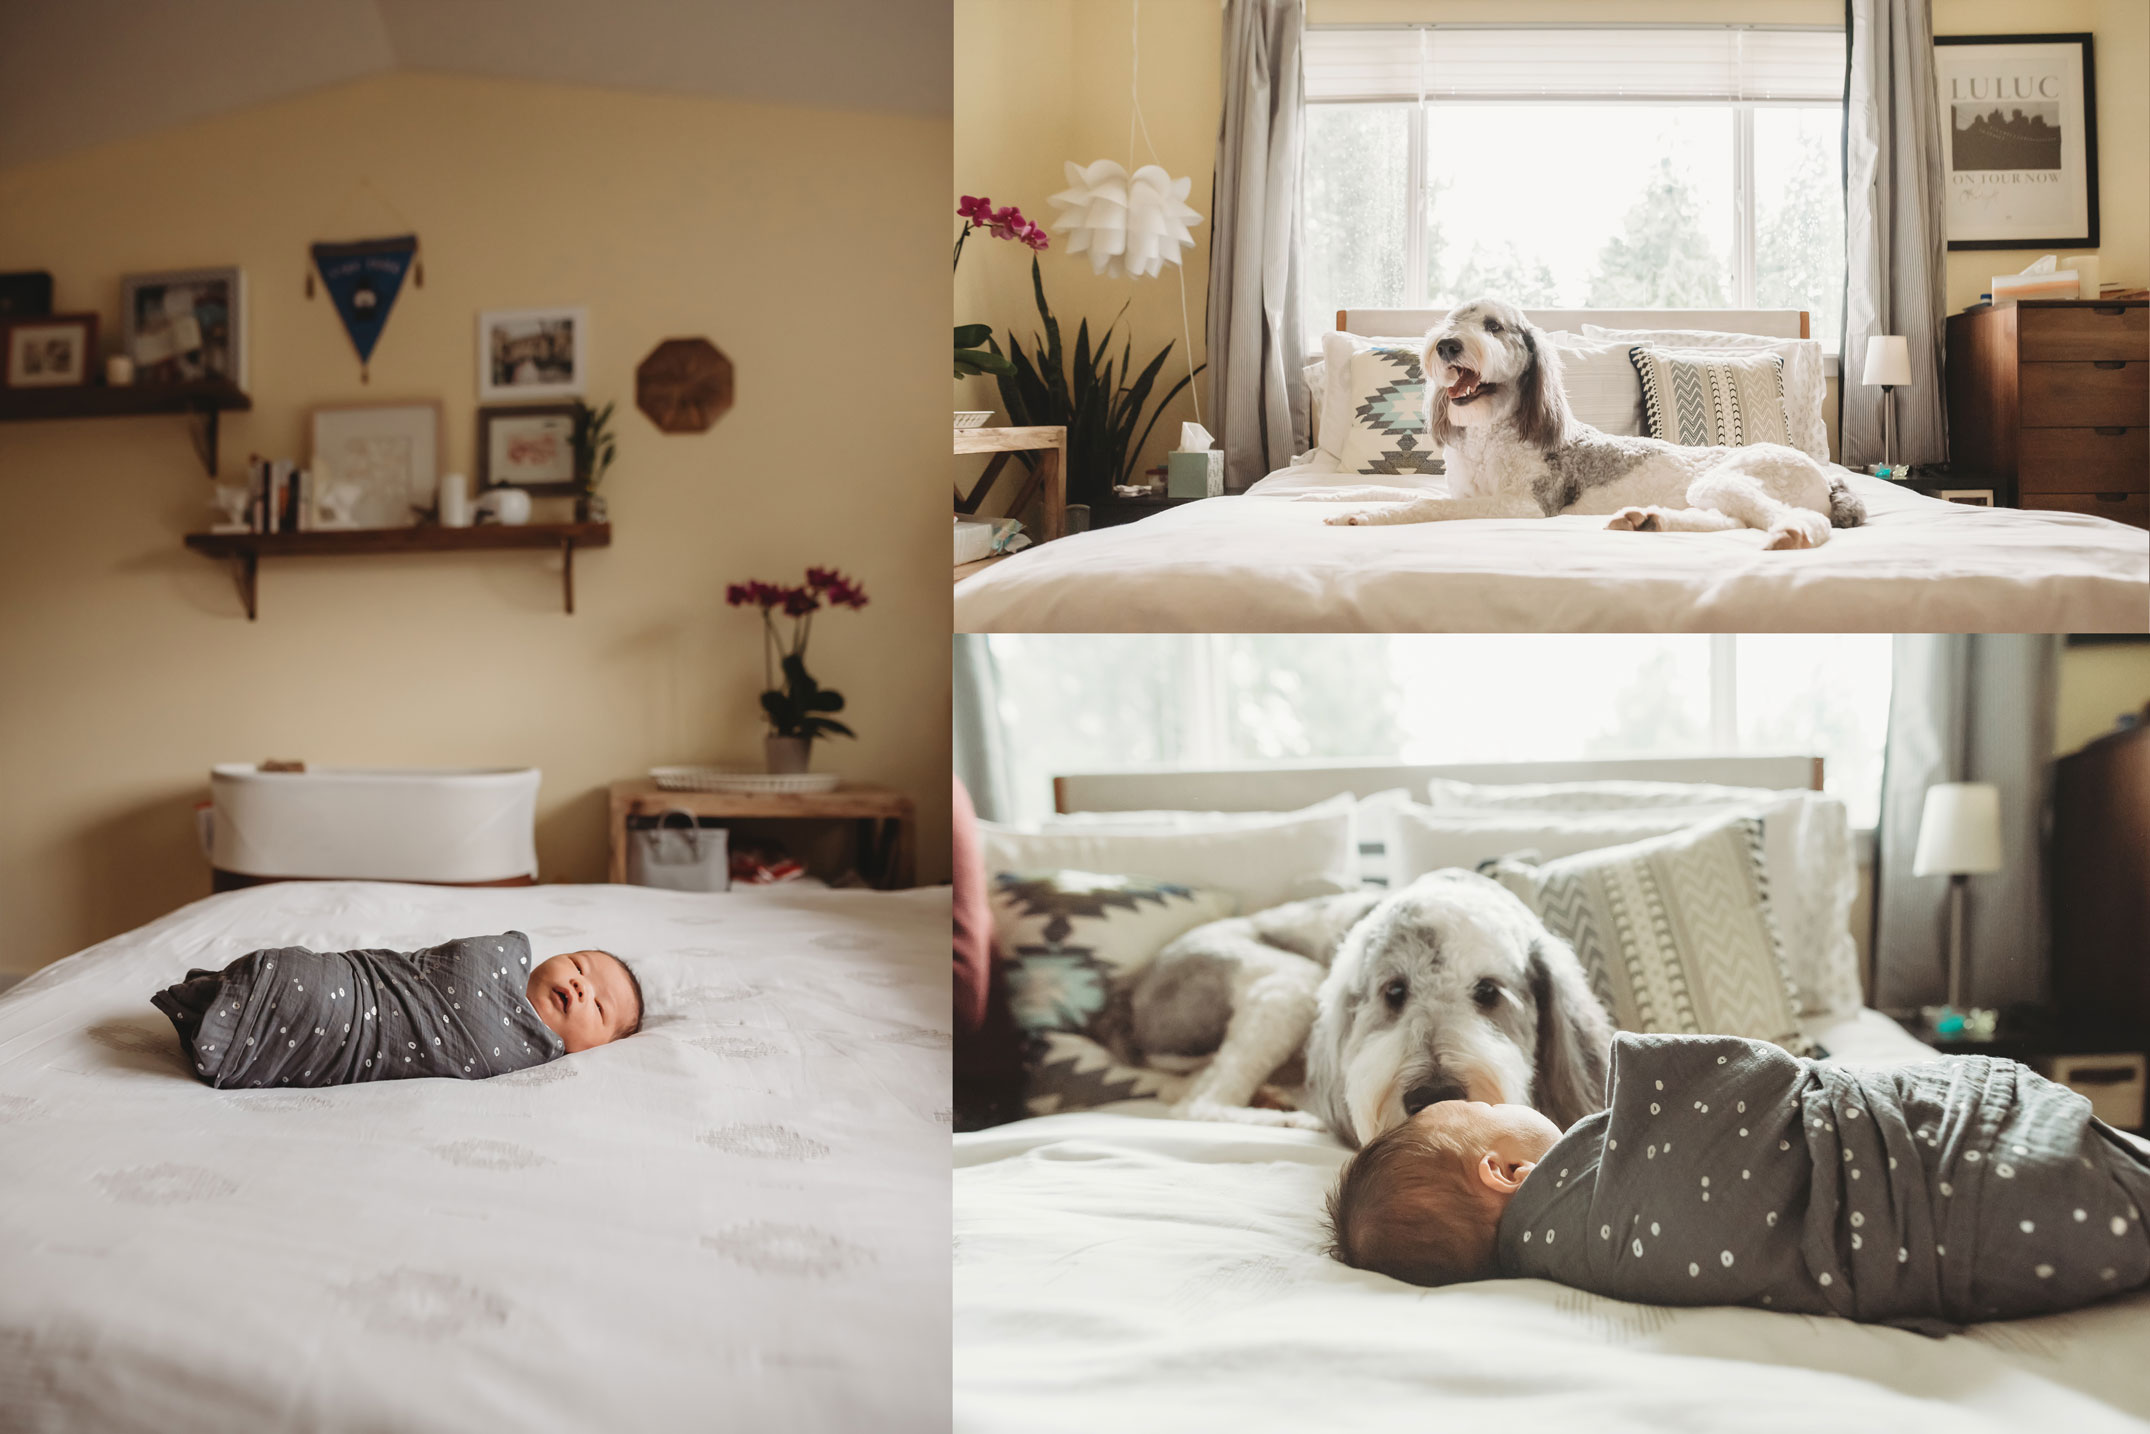 sheepadoodle and newborn baby boy